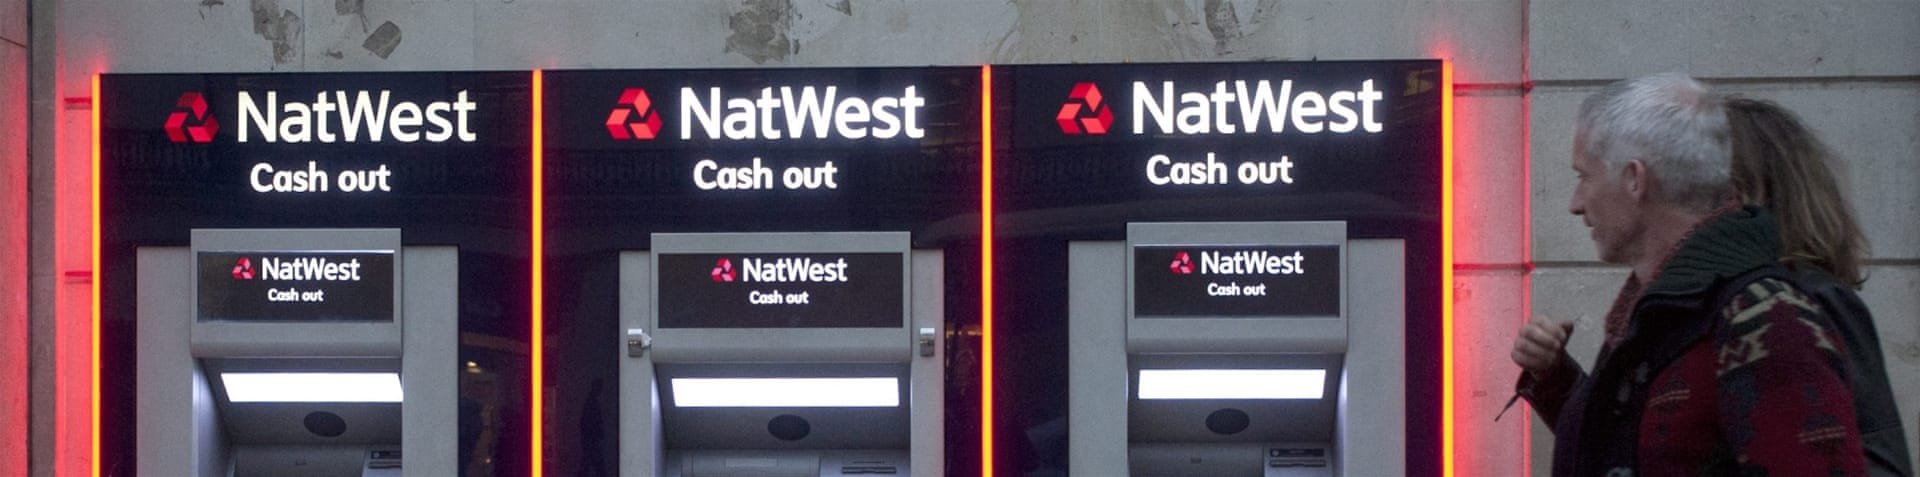 The British government is the majority shareholder in the Royal Bank of Scotland group, which owns Natwest [Reuters]